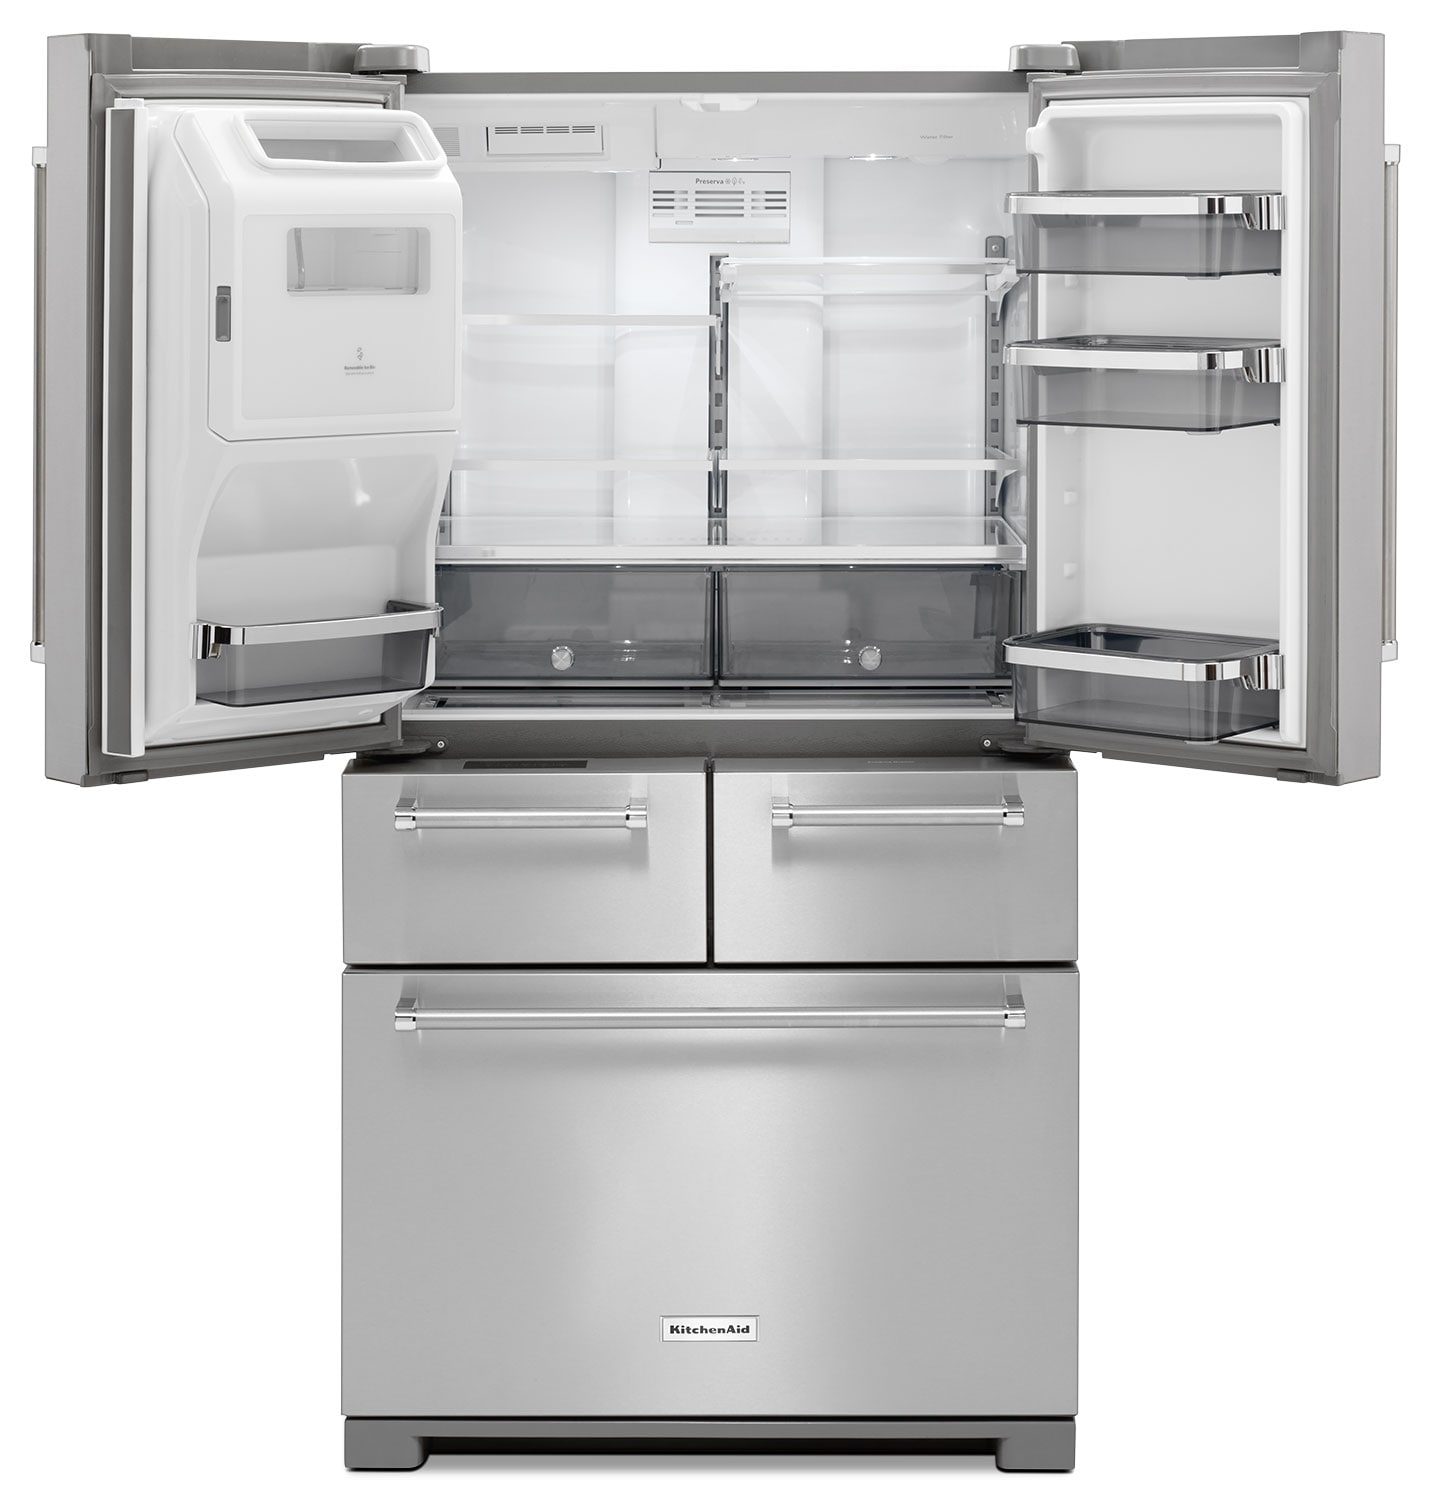 Kitchenaid Krfc302ess 22 Cu Ft Counterdepth French Door The Here39s A Few Diagrams That Might Help This Is For Typical Bosch Stainless Steel Refrigerator 258